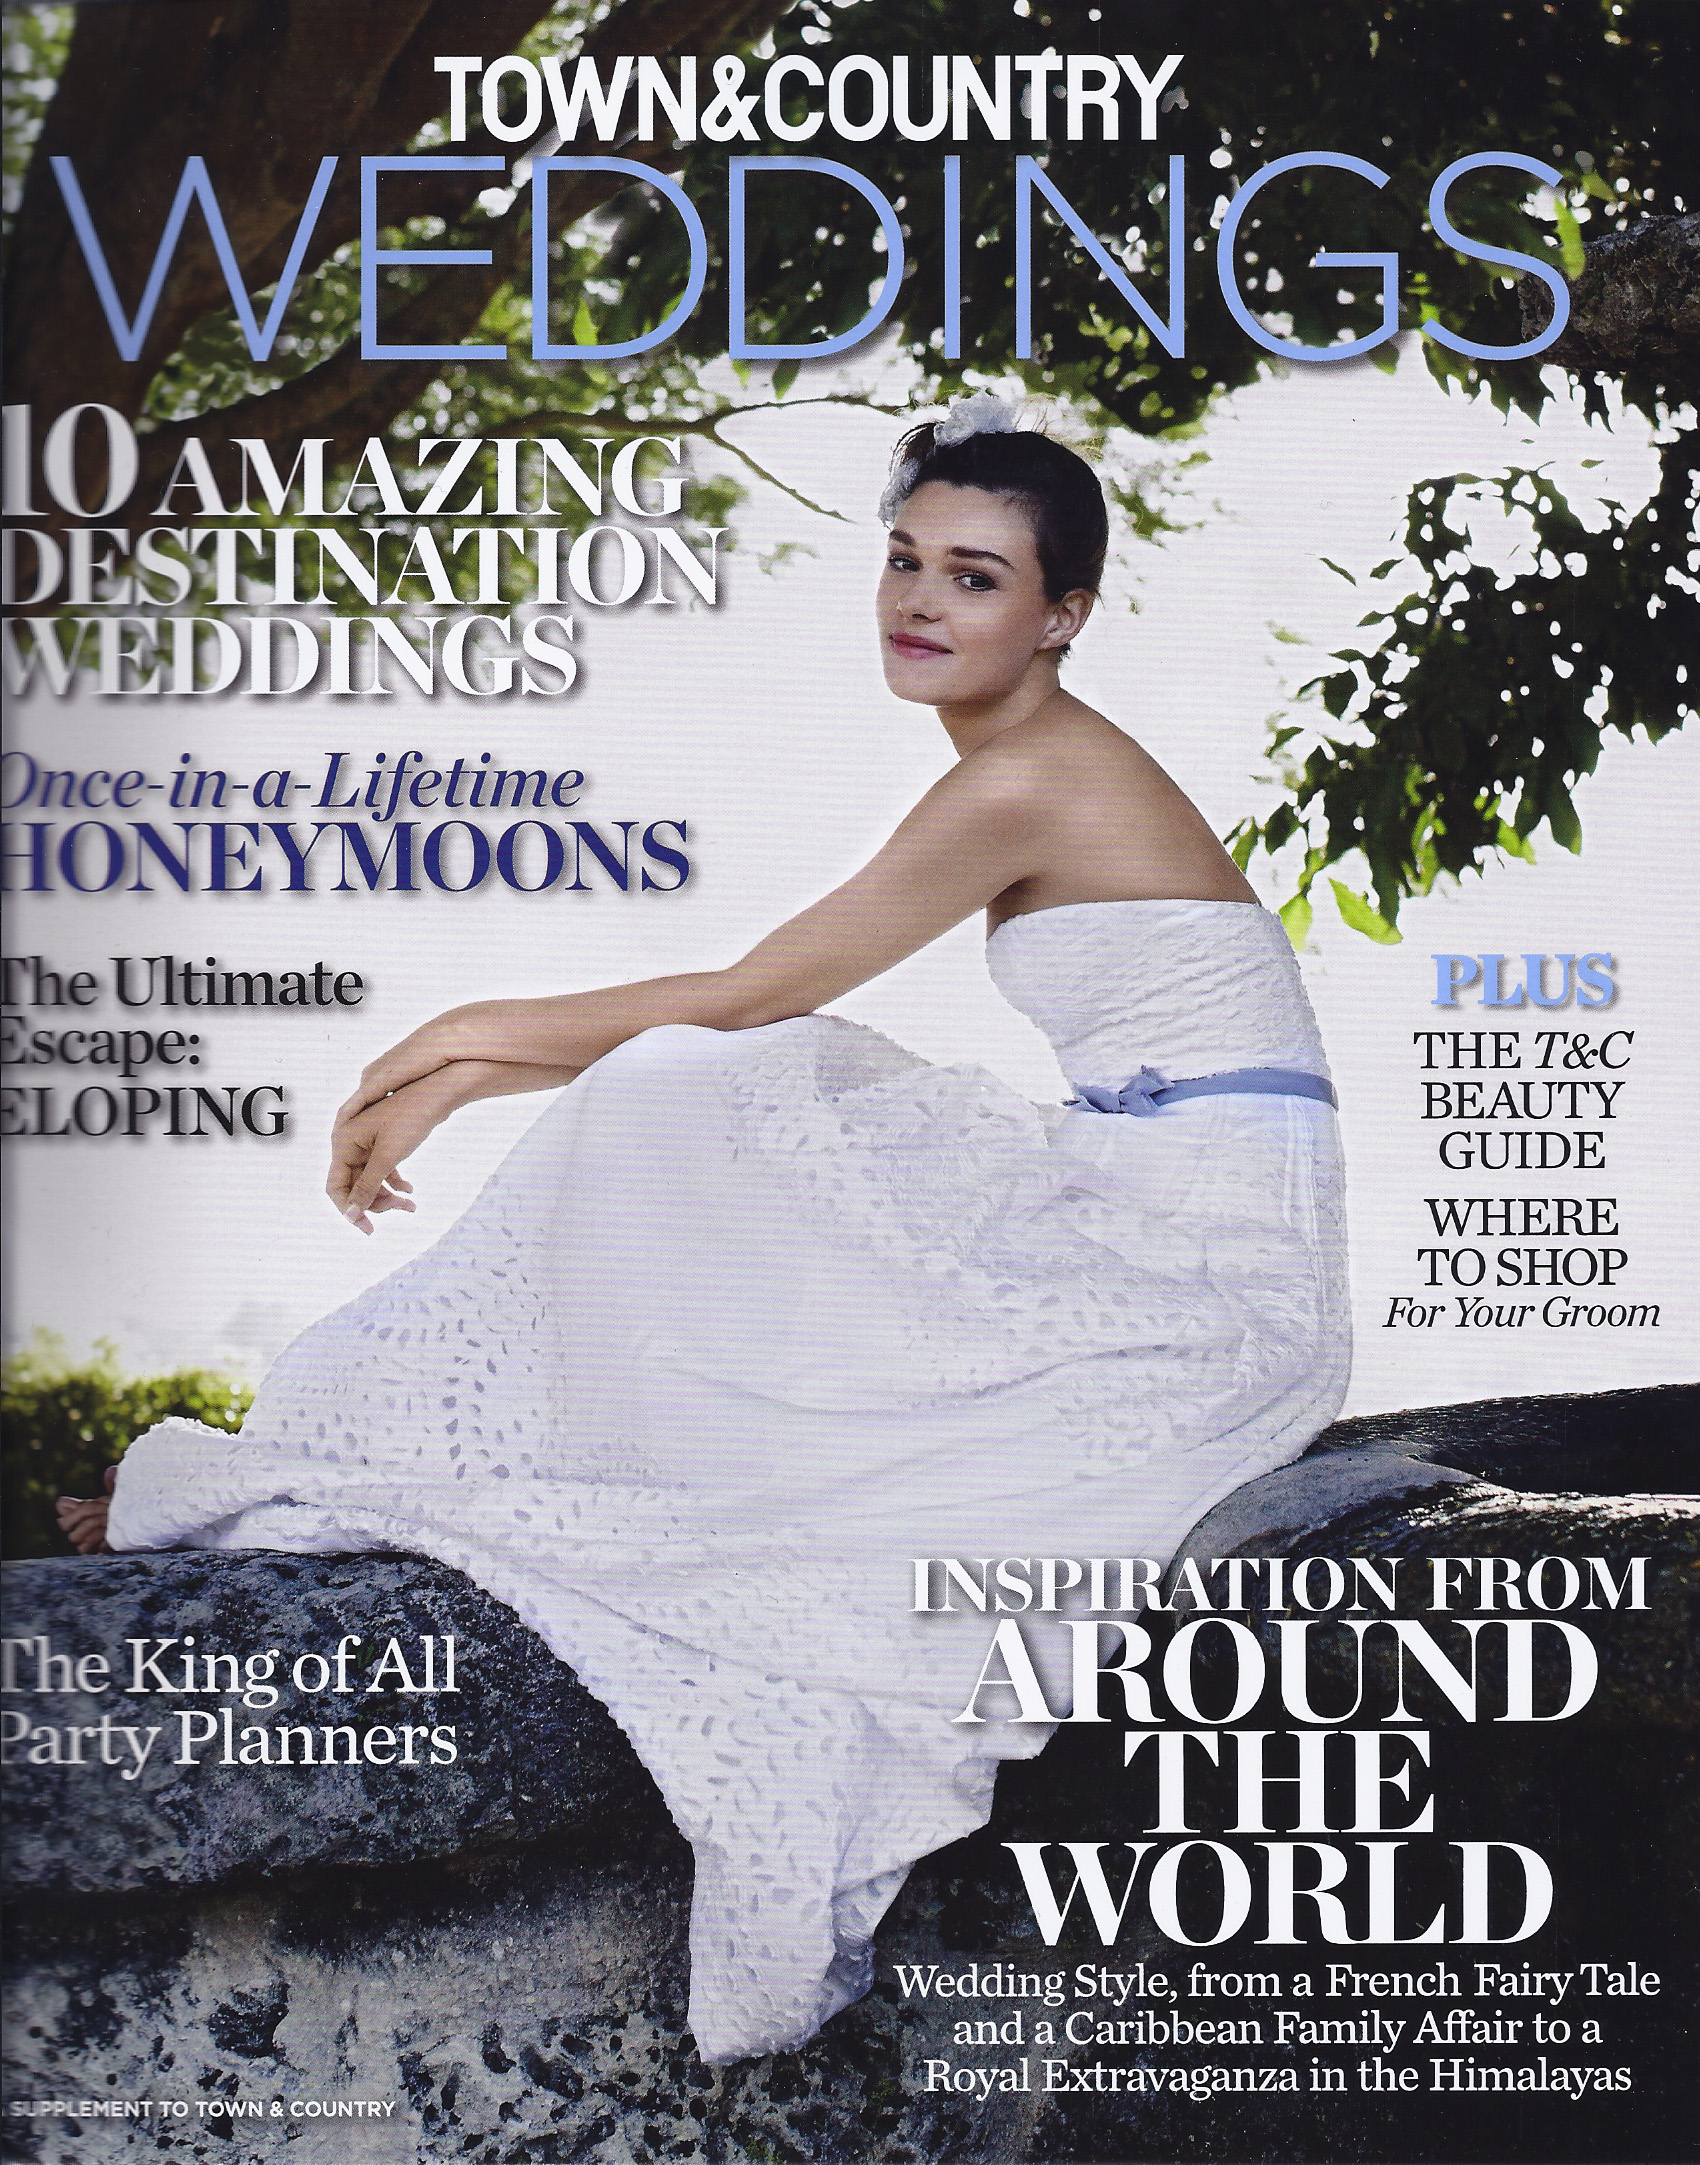 Town & Country - Weddings